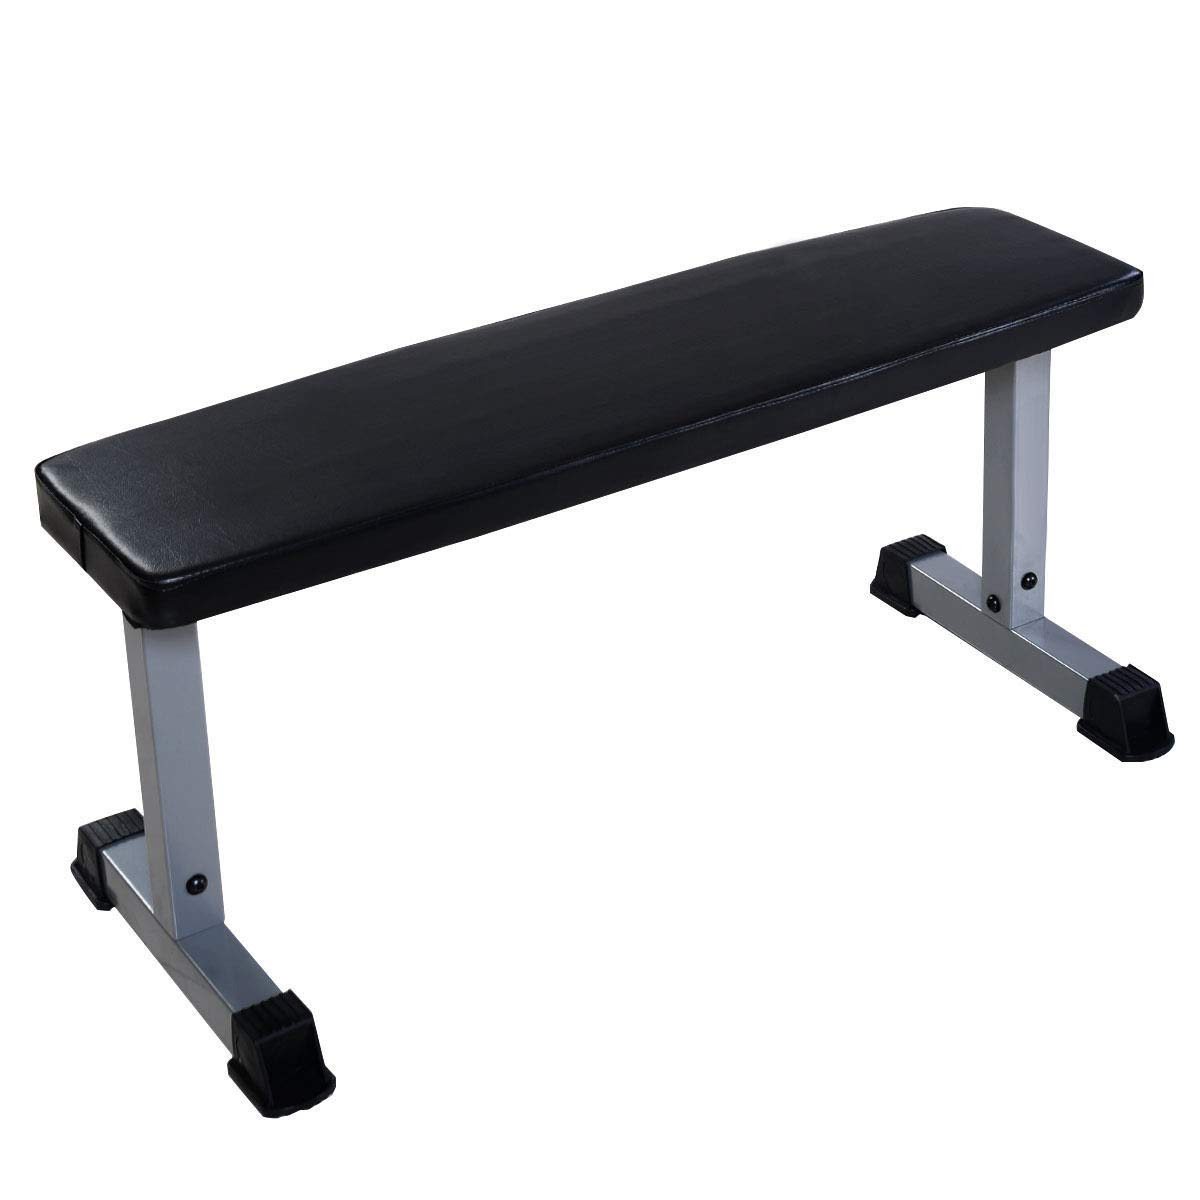 VeenShop 440 lbs Black Sit Up Bench Flat Crunch Board AB Abdominal Fitness Weight Exercise